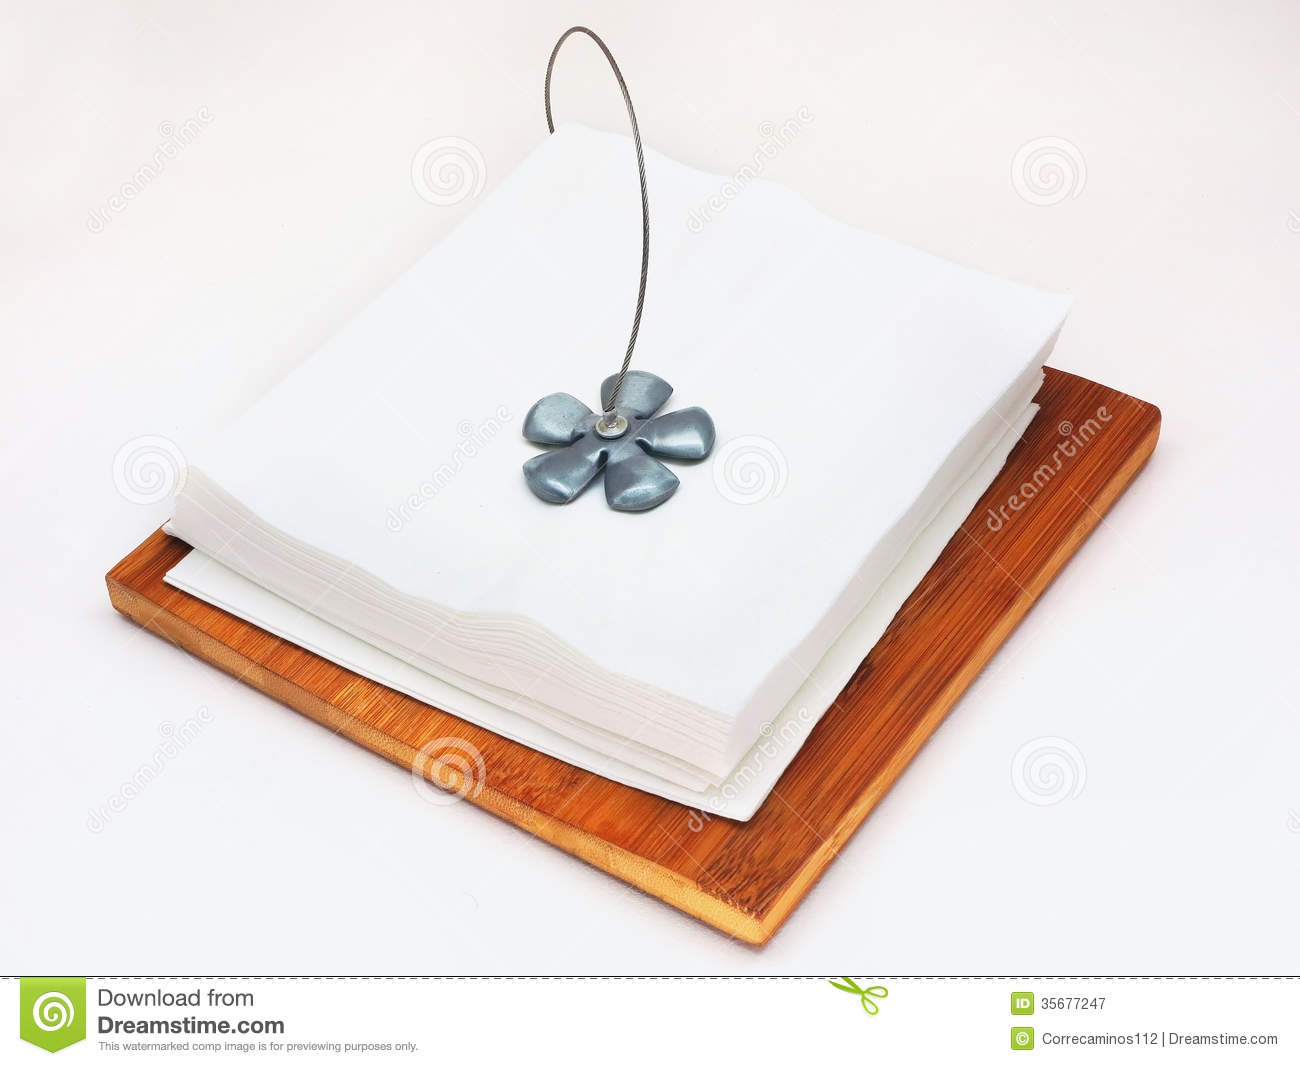 Table Napkin Holder 3 Royalty Free Stock Photography. Hud Help Desk. Heavy Duty Sliding Drawer Hardware. White Console Table With Drawers. Trestle Tables. Zinc Top Coffee Table. Wood Bistro Table. Chair And Desk Set. Shadow Box Coffee Table